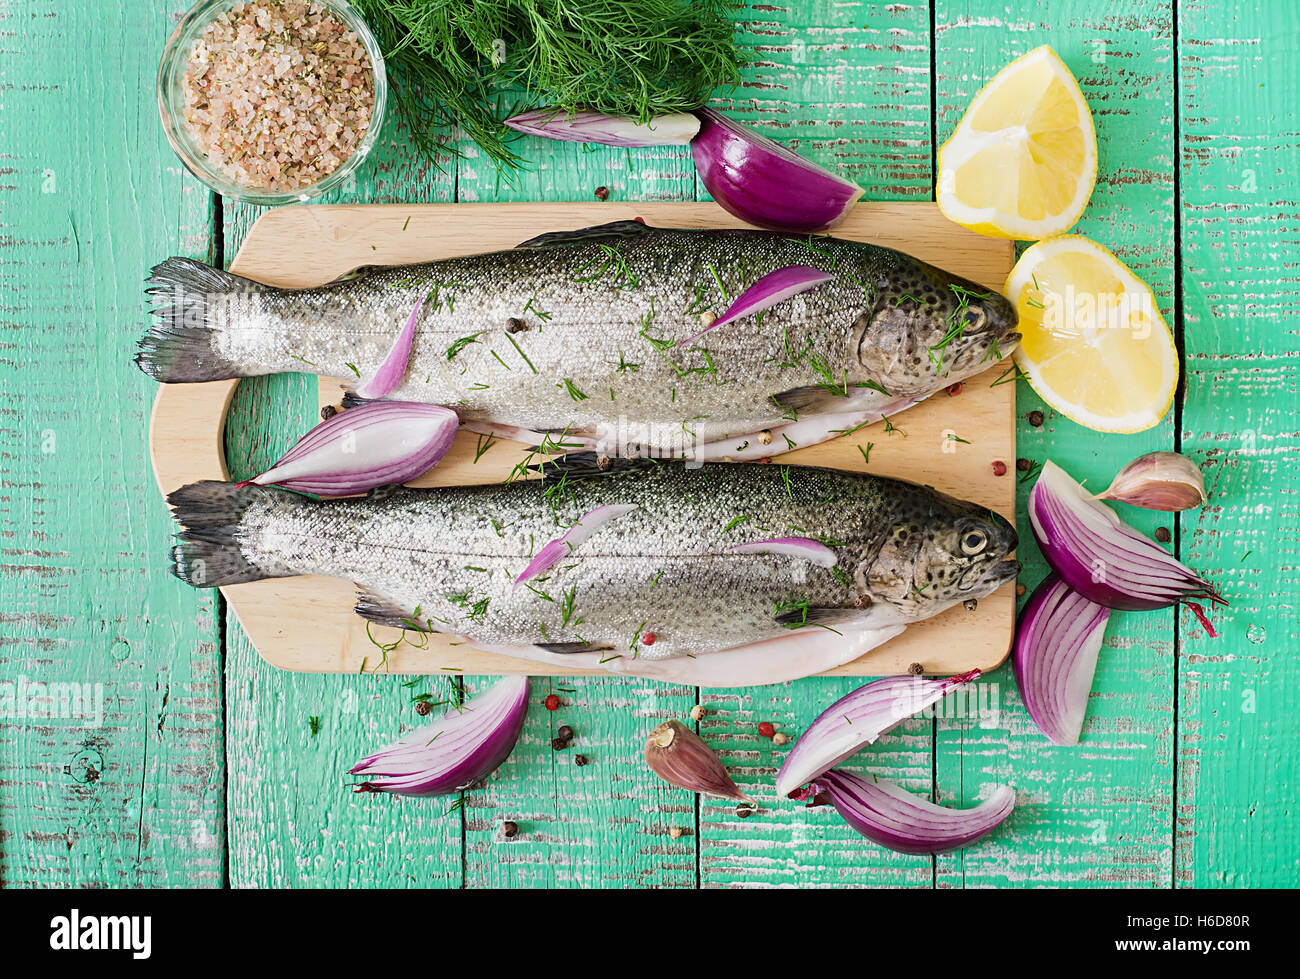 Gutted trout on a bright wooden background. Top view - Stock Image